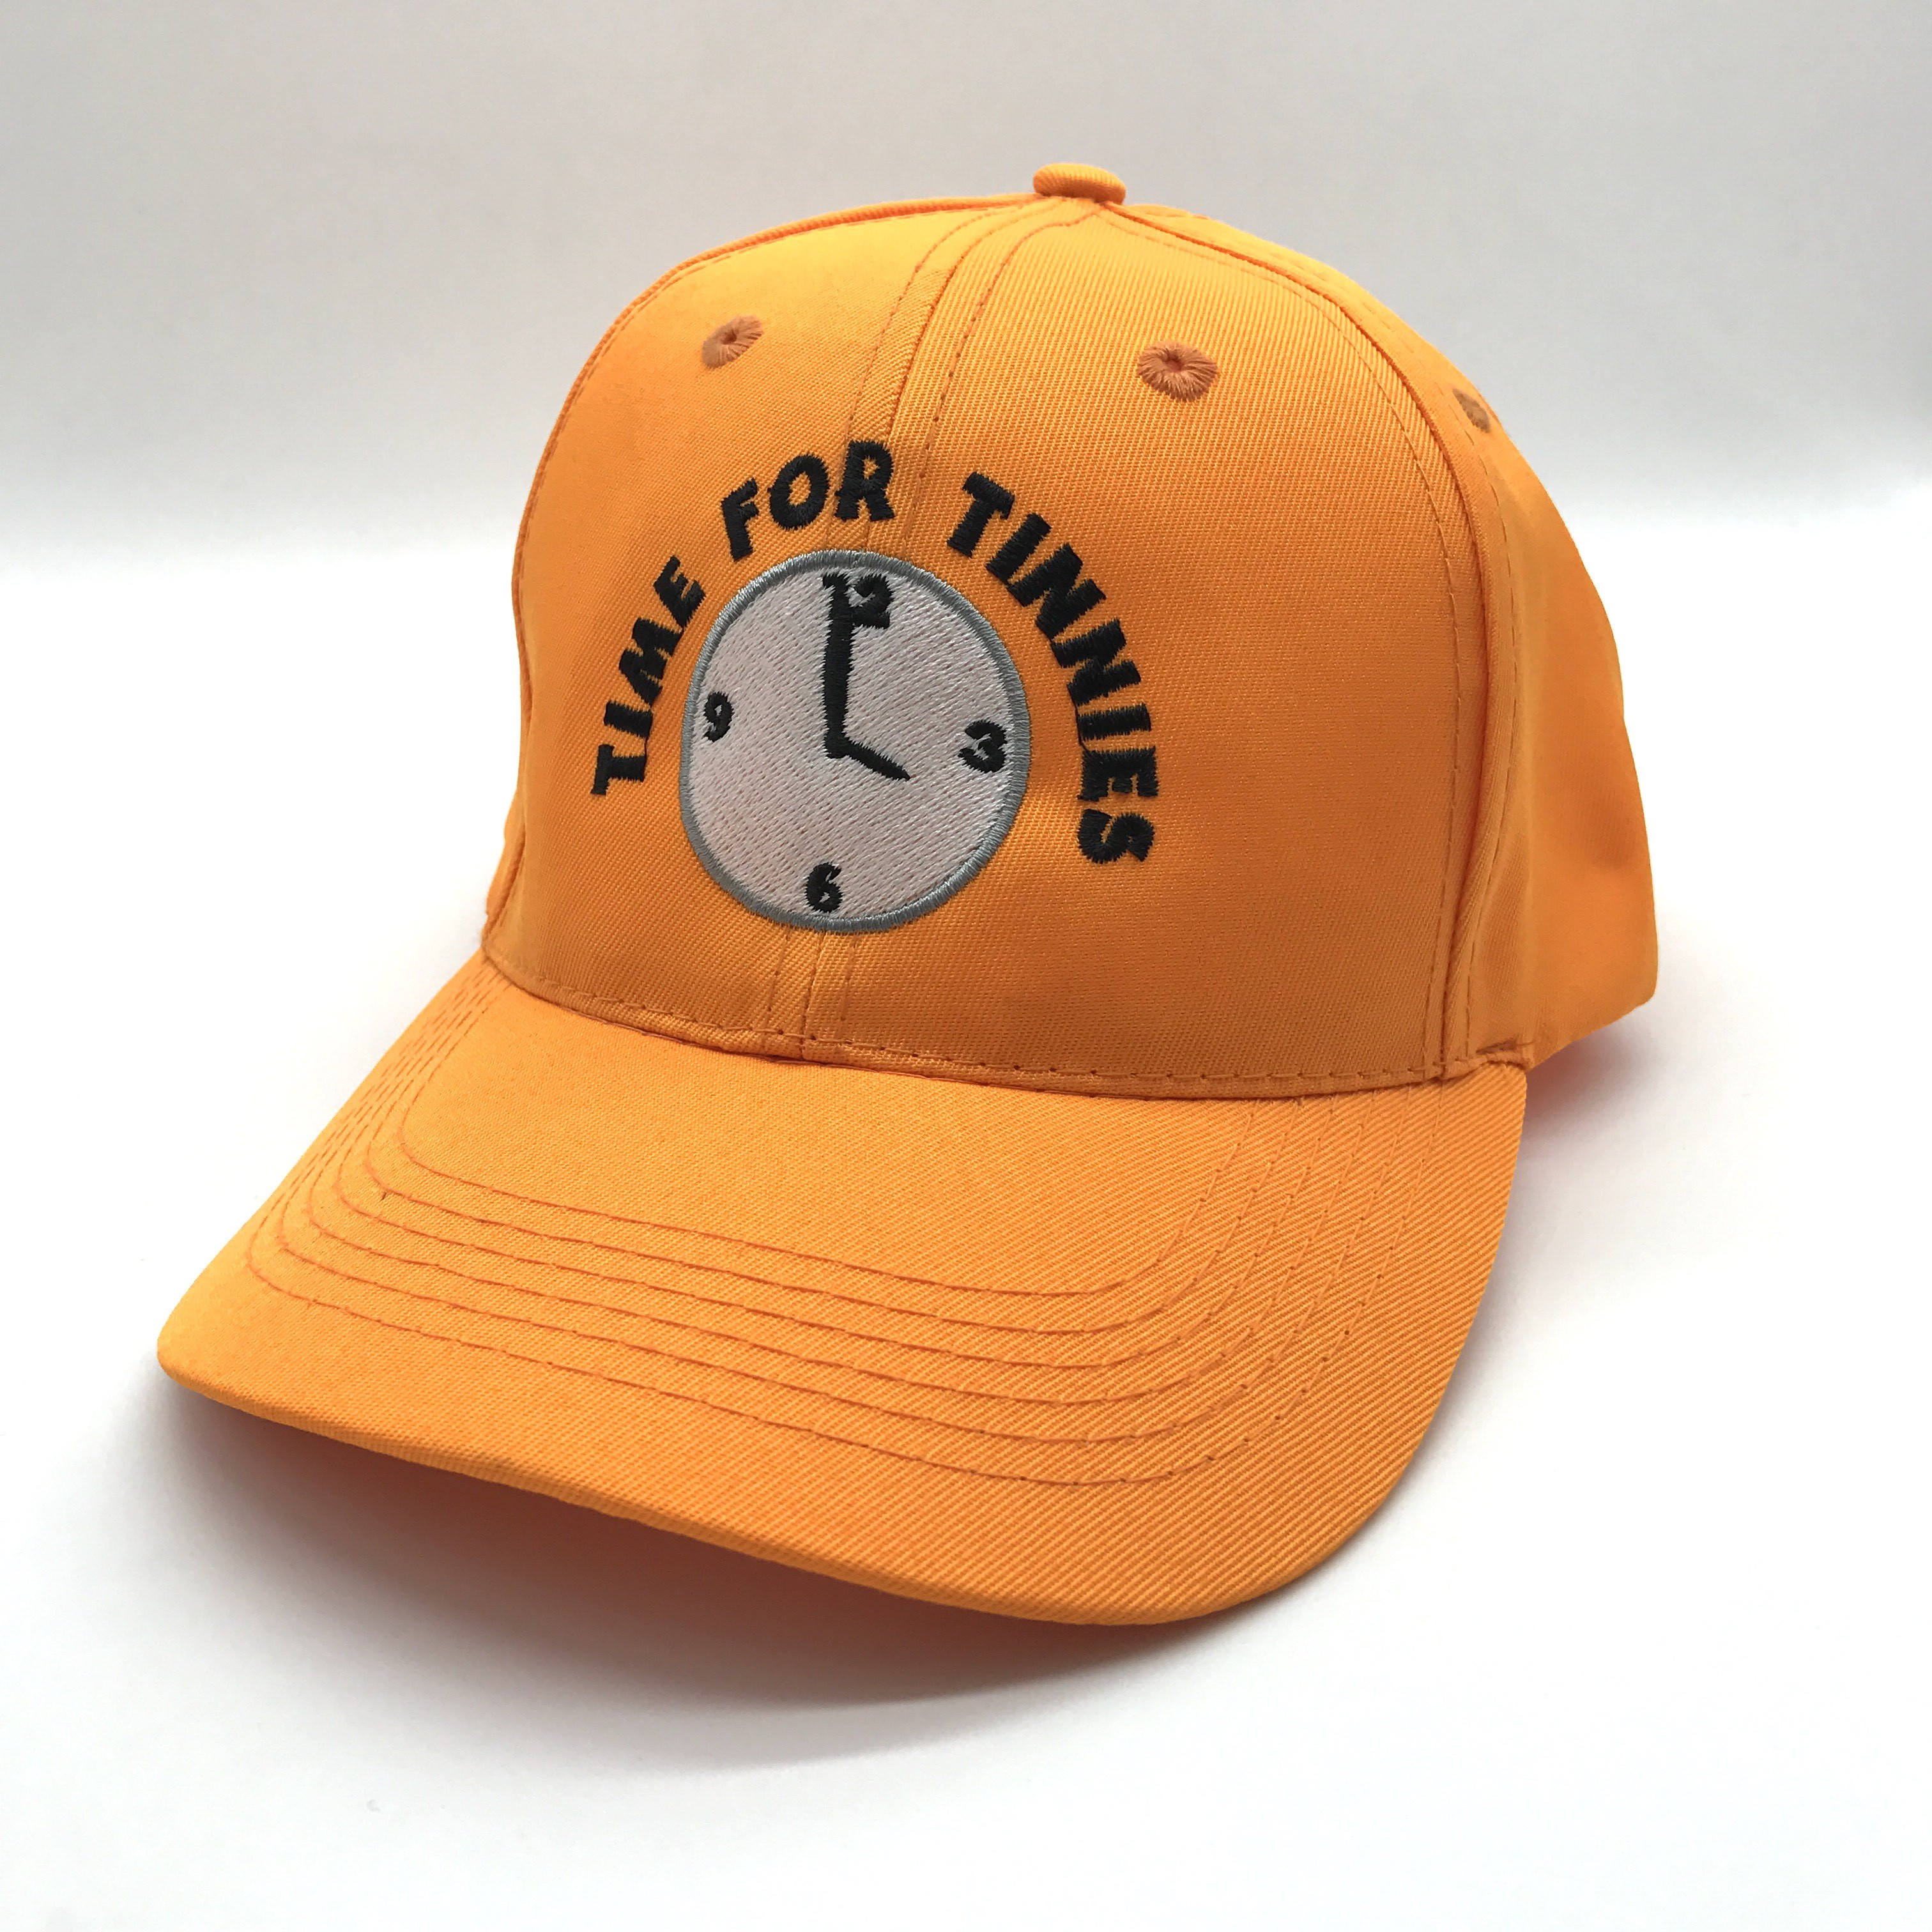 TIME FOR TINNIES ORANGE HAT